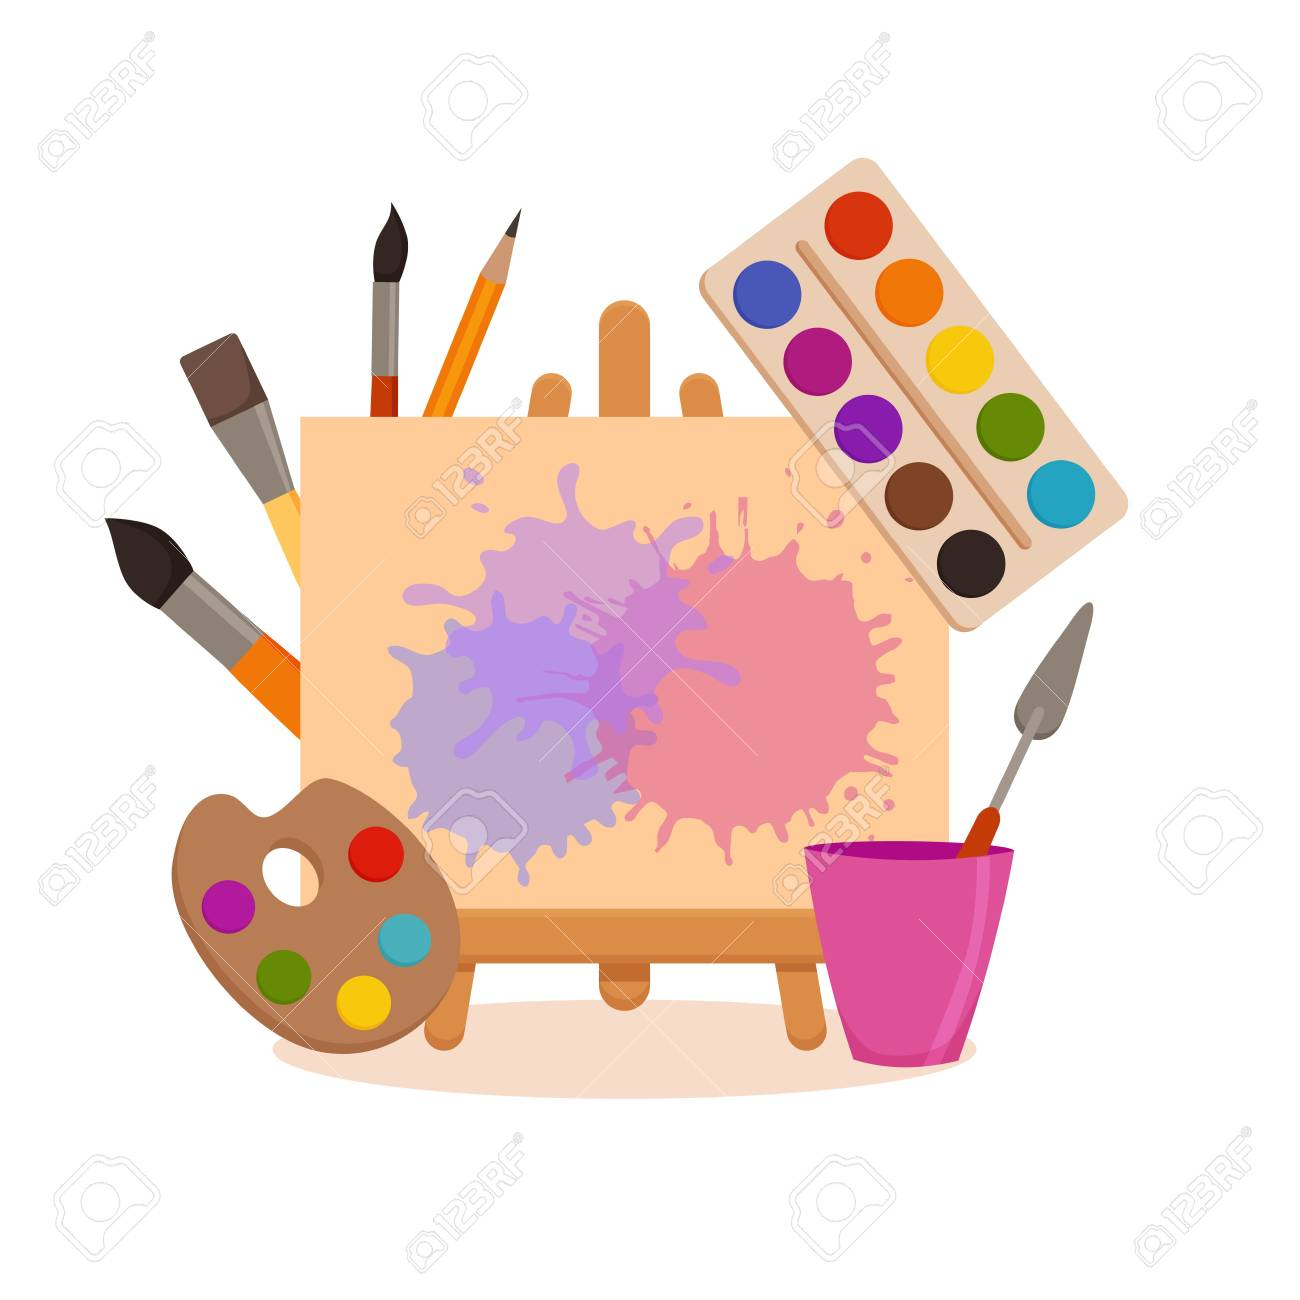 Painting Tools Elements Cartoon Colorful Vector Concept Art Royalty Free Cliparts Vectors And Stock Illustration Image 110024006